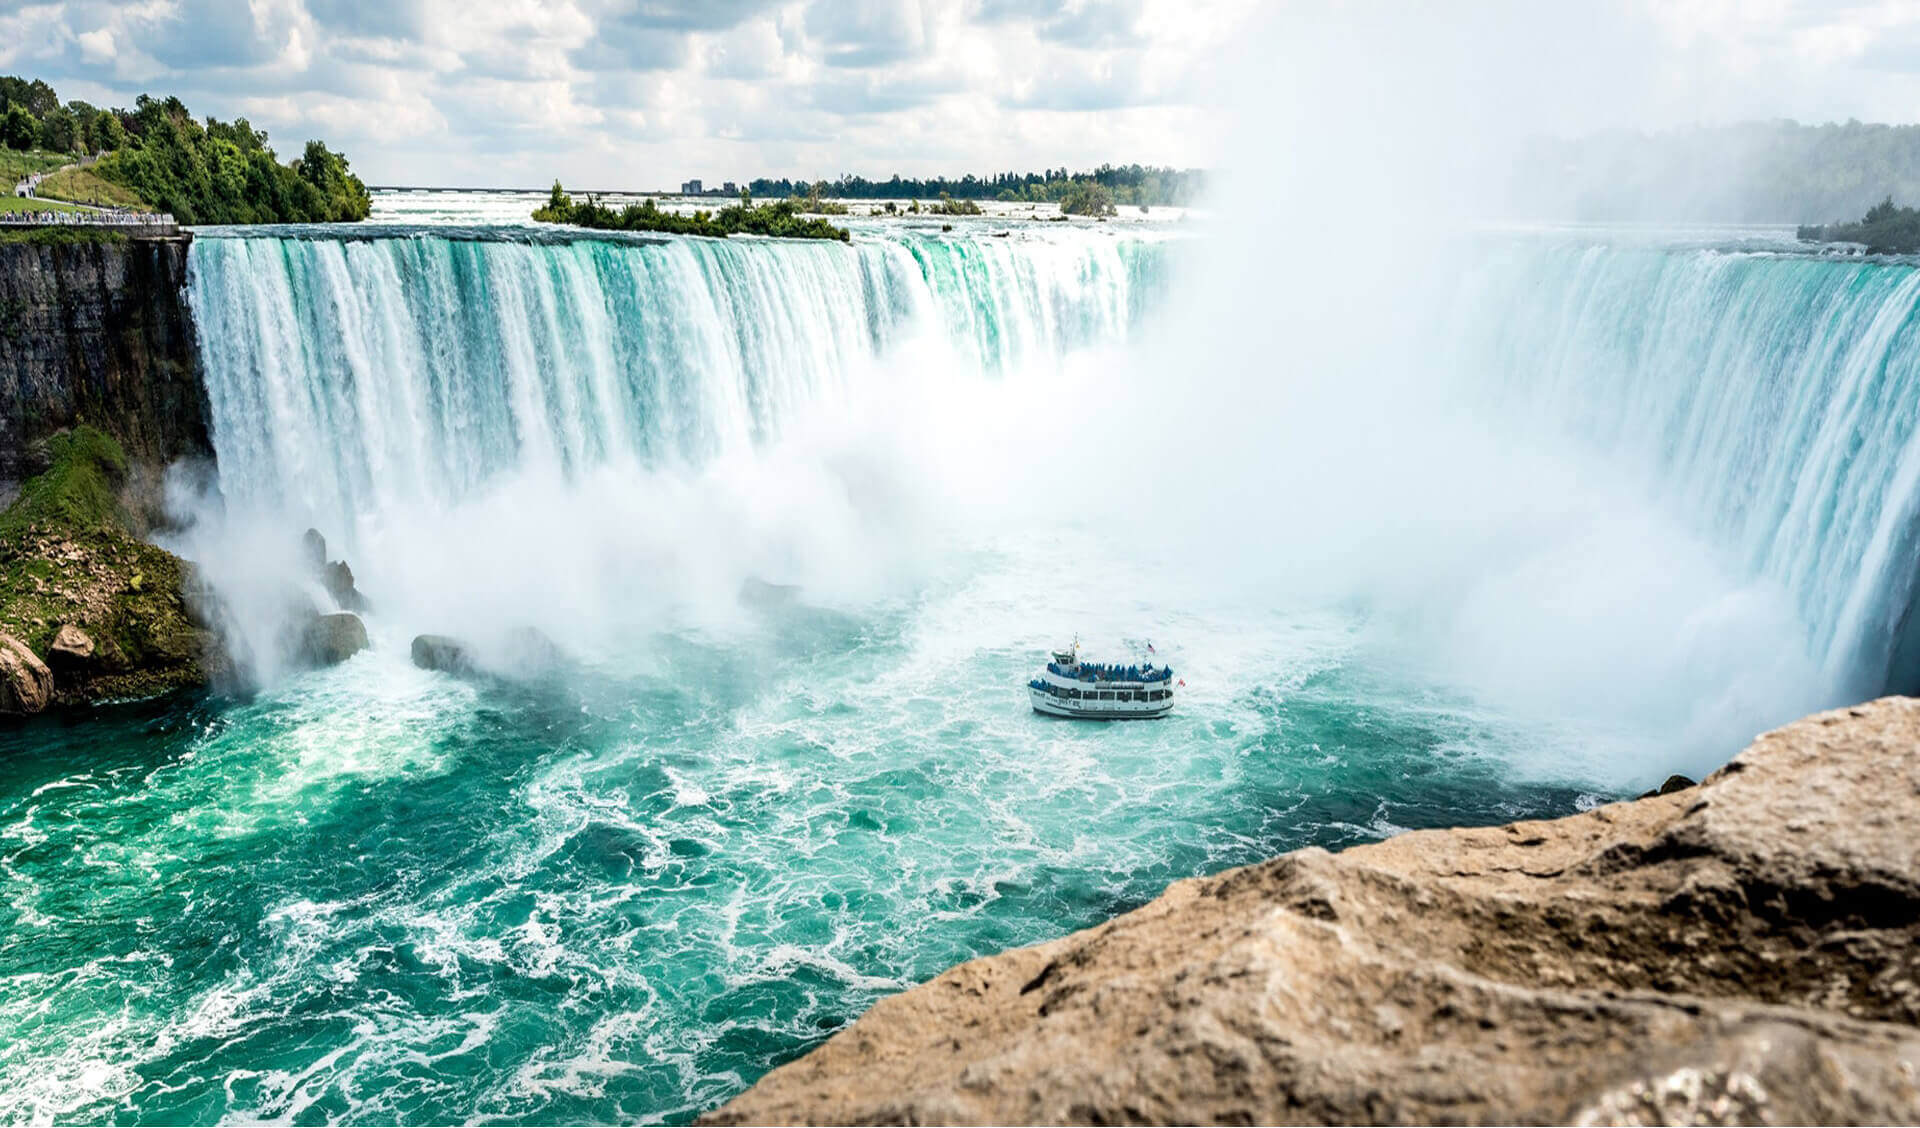 Deluxe Niagara Falls Day Tour With Boat Cruise